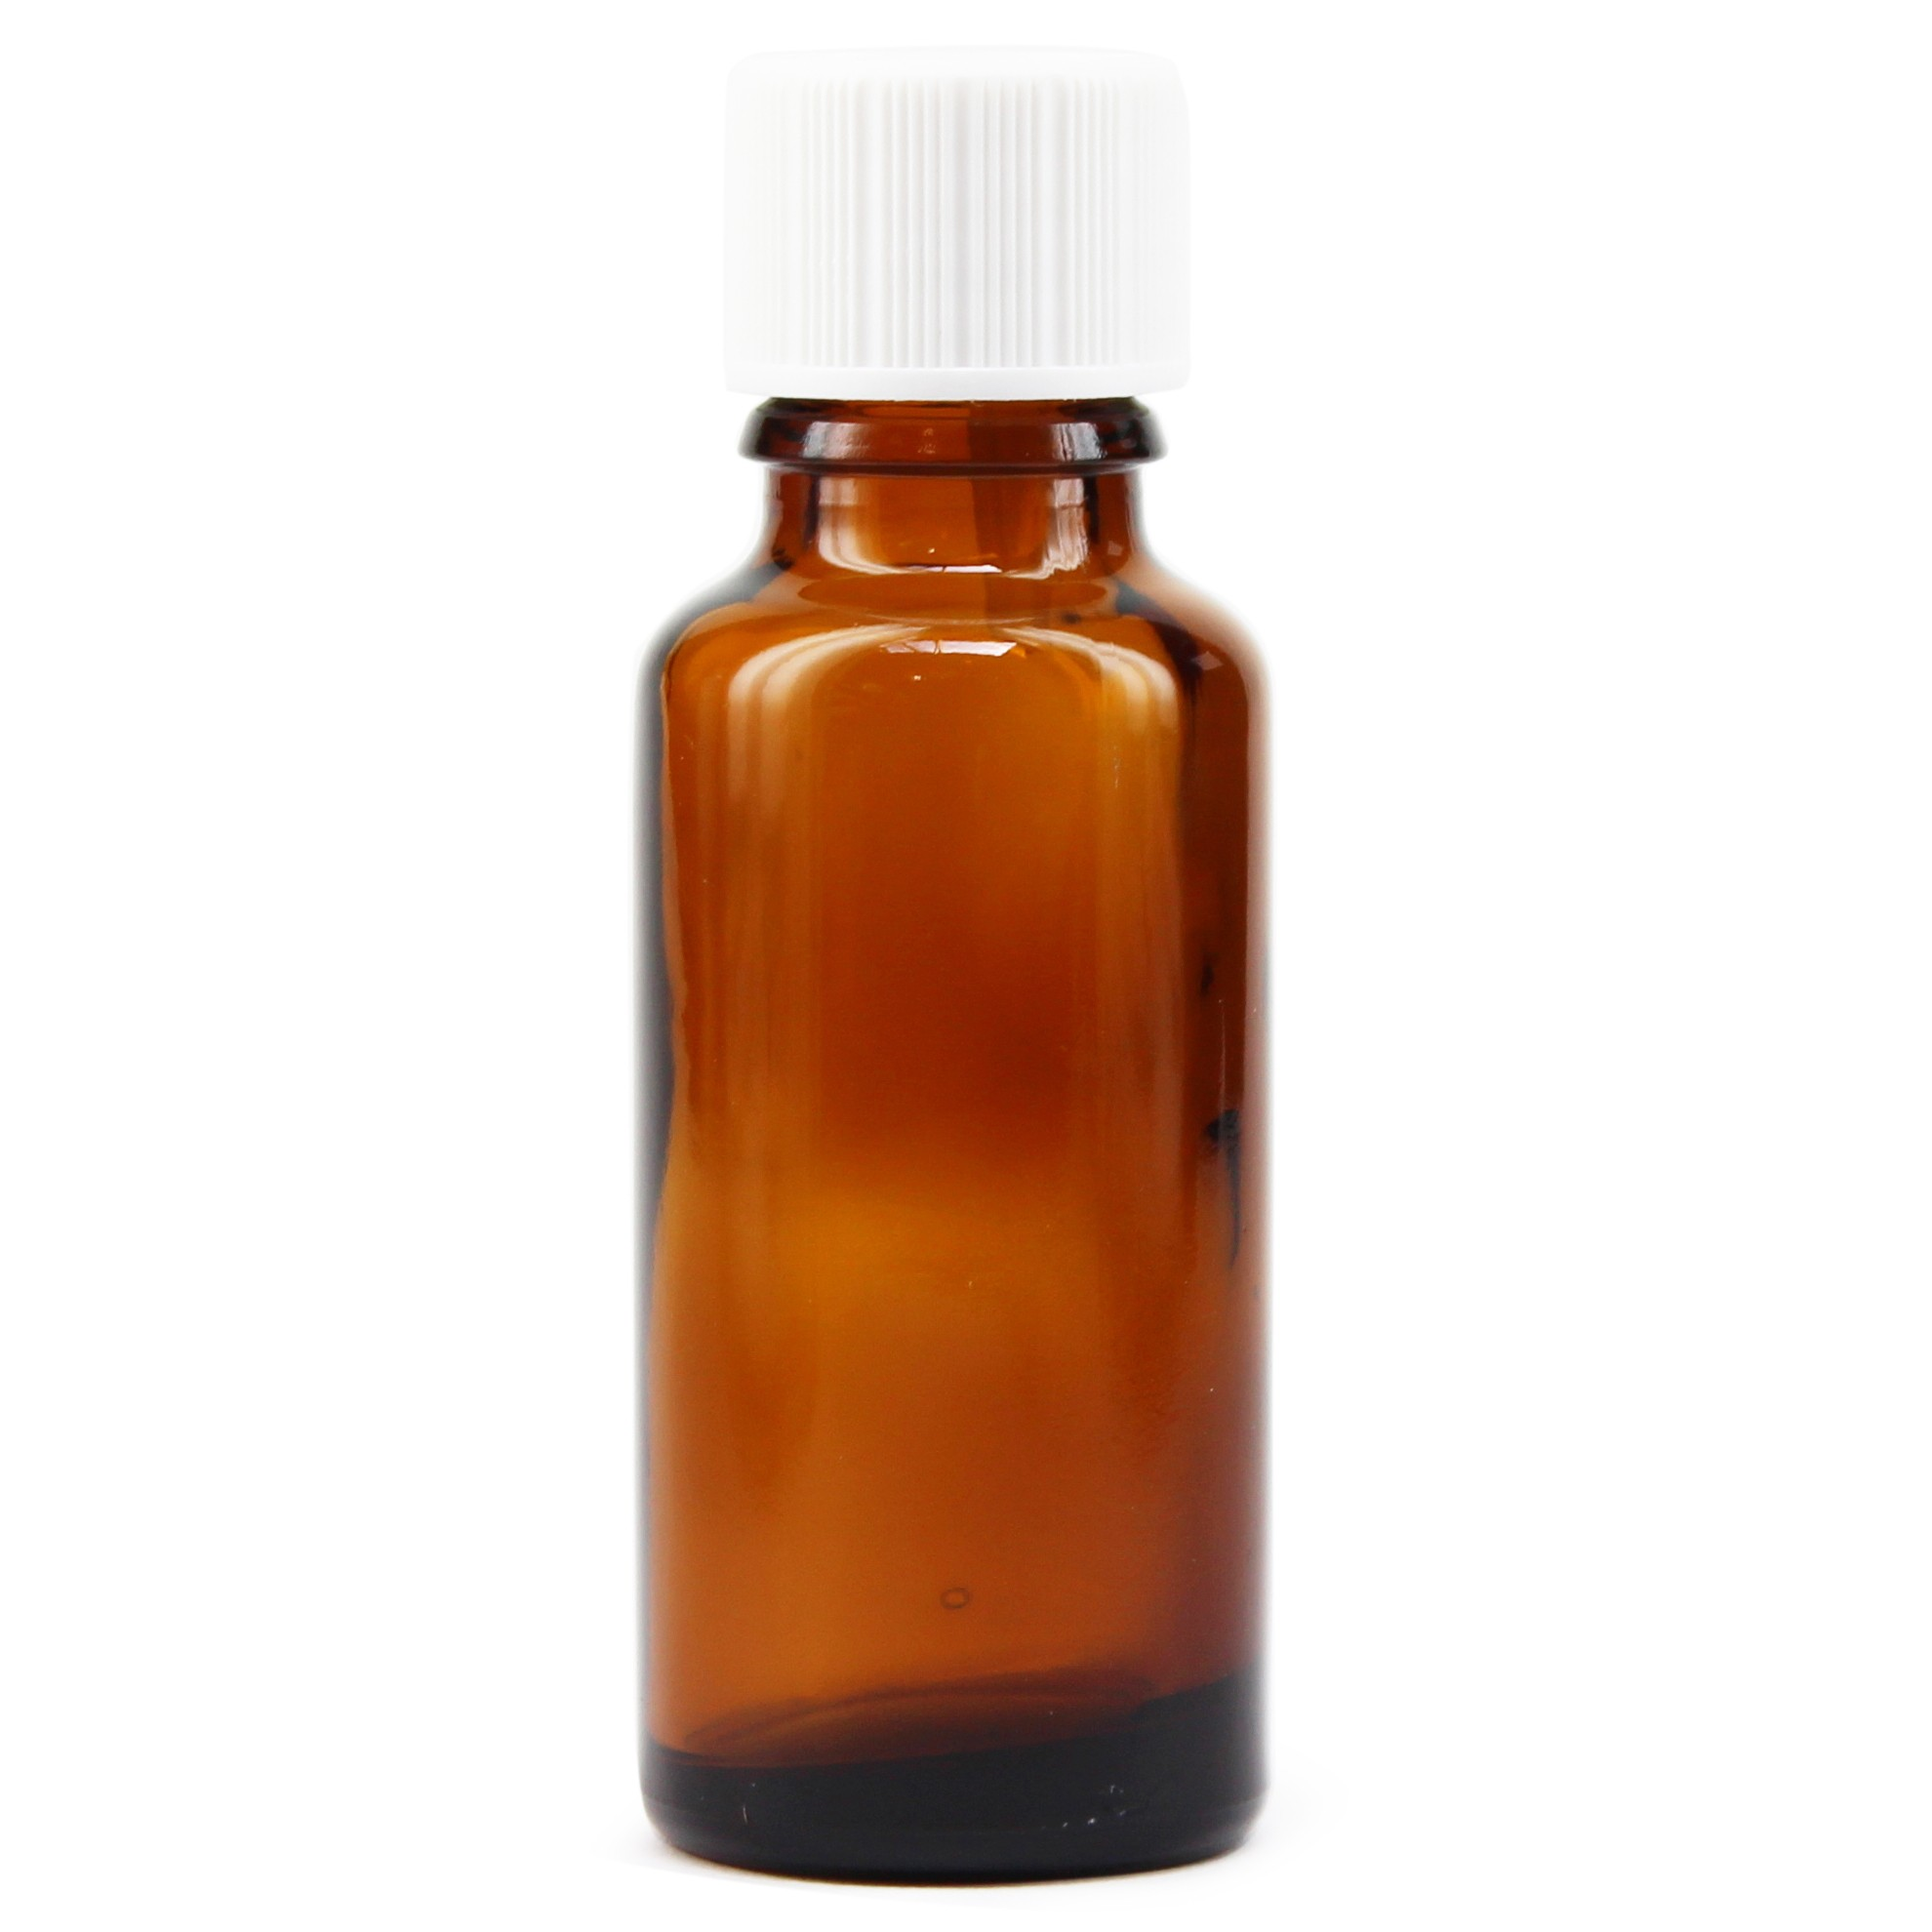 Amber Glass Tett Bottle With Dropper Meadows Aroma